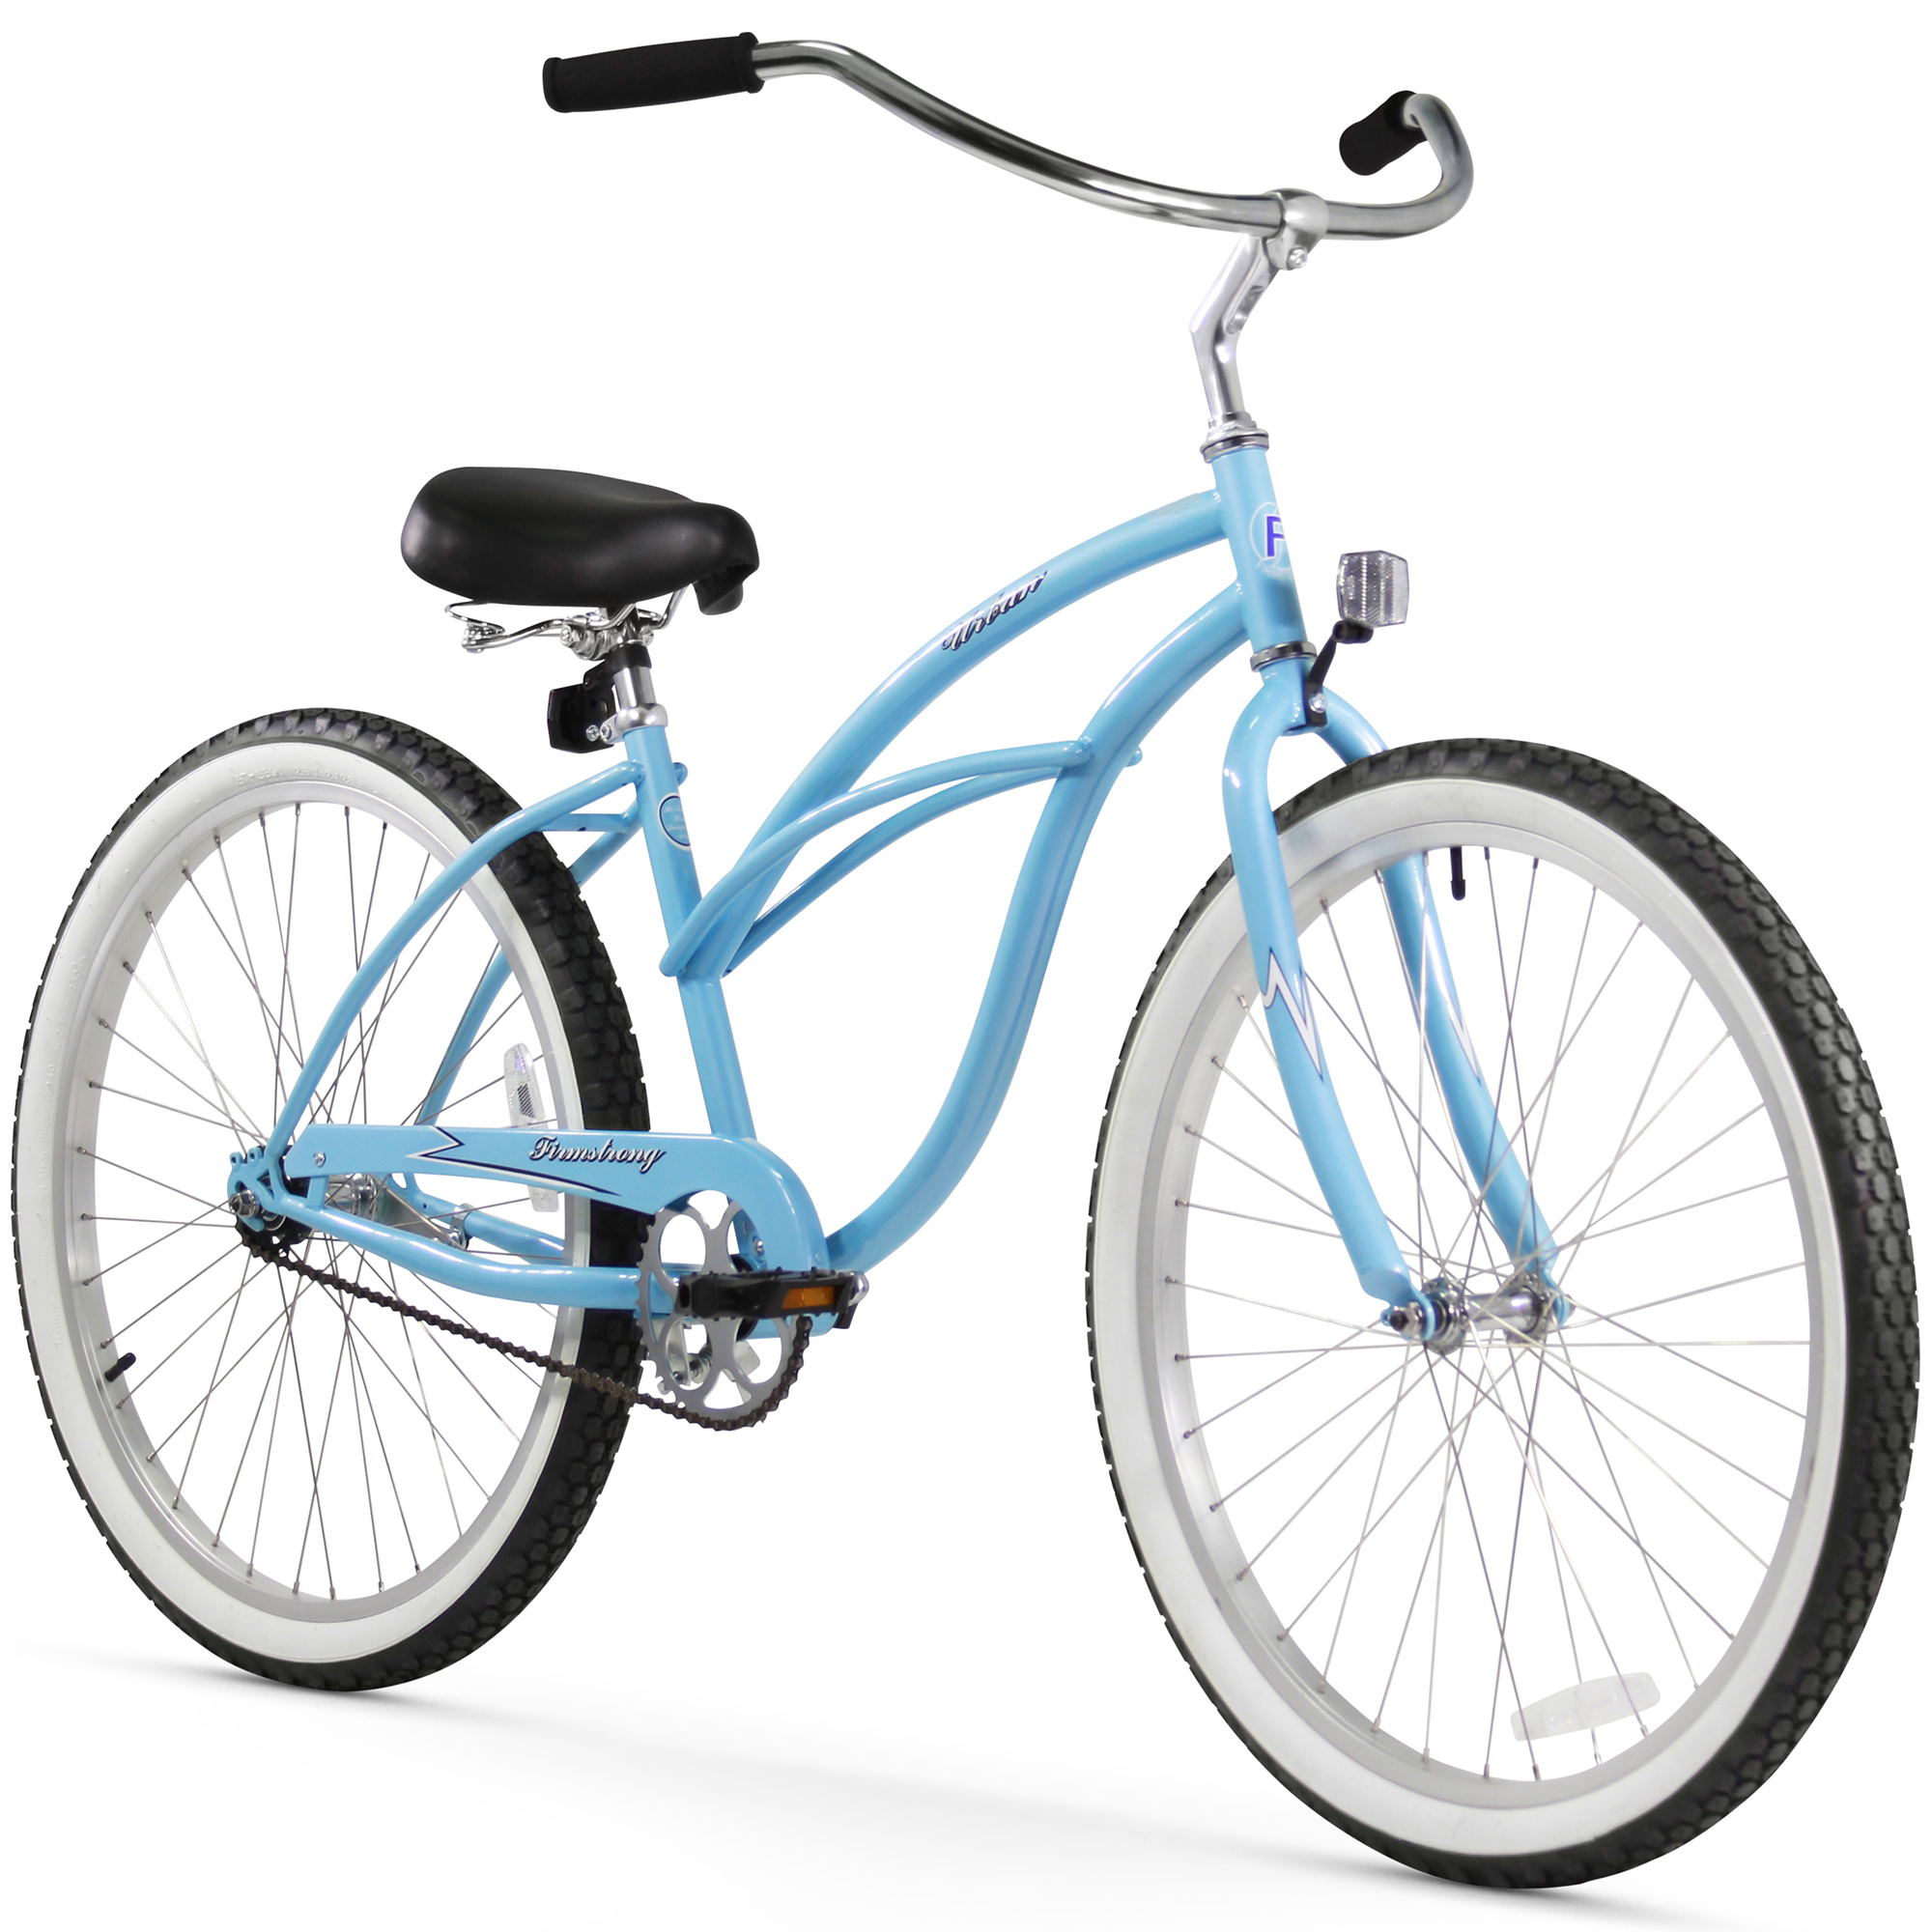 "26"" Firmstrong Urban Lady Single Speed Women's Beach Cruiser Bike, Baby Blue"